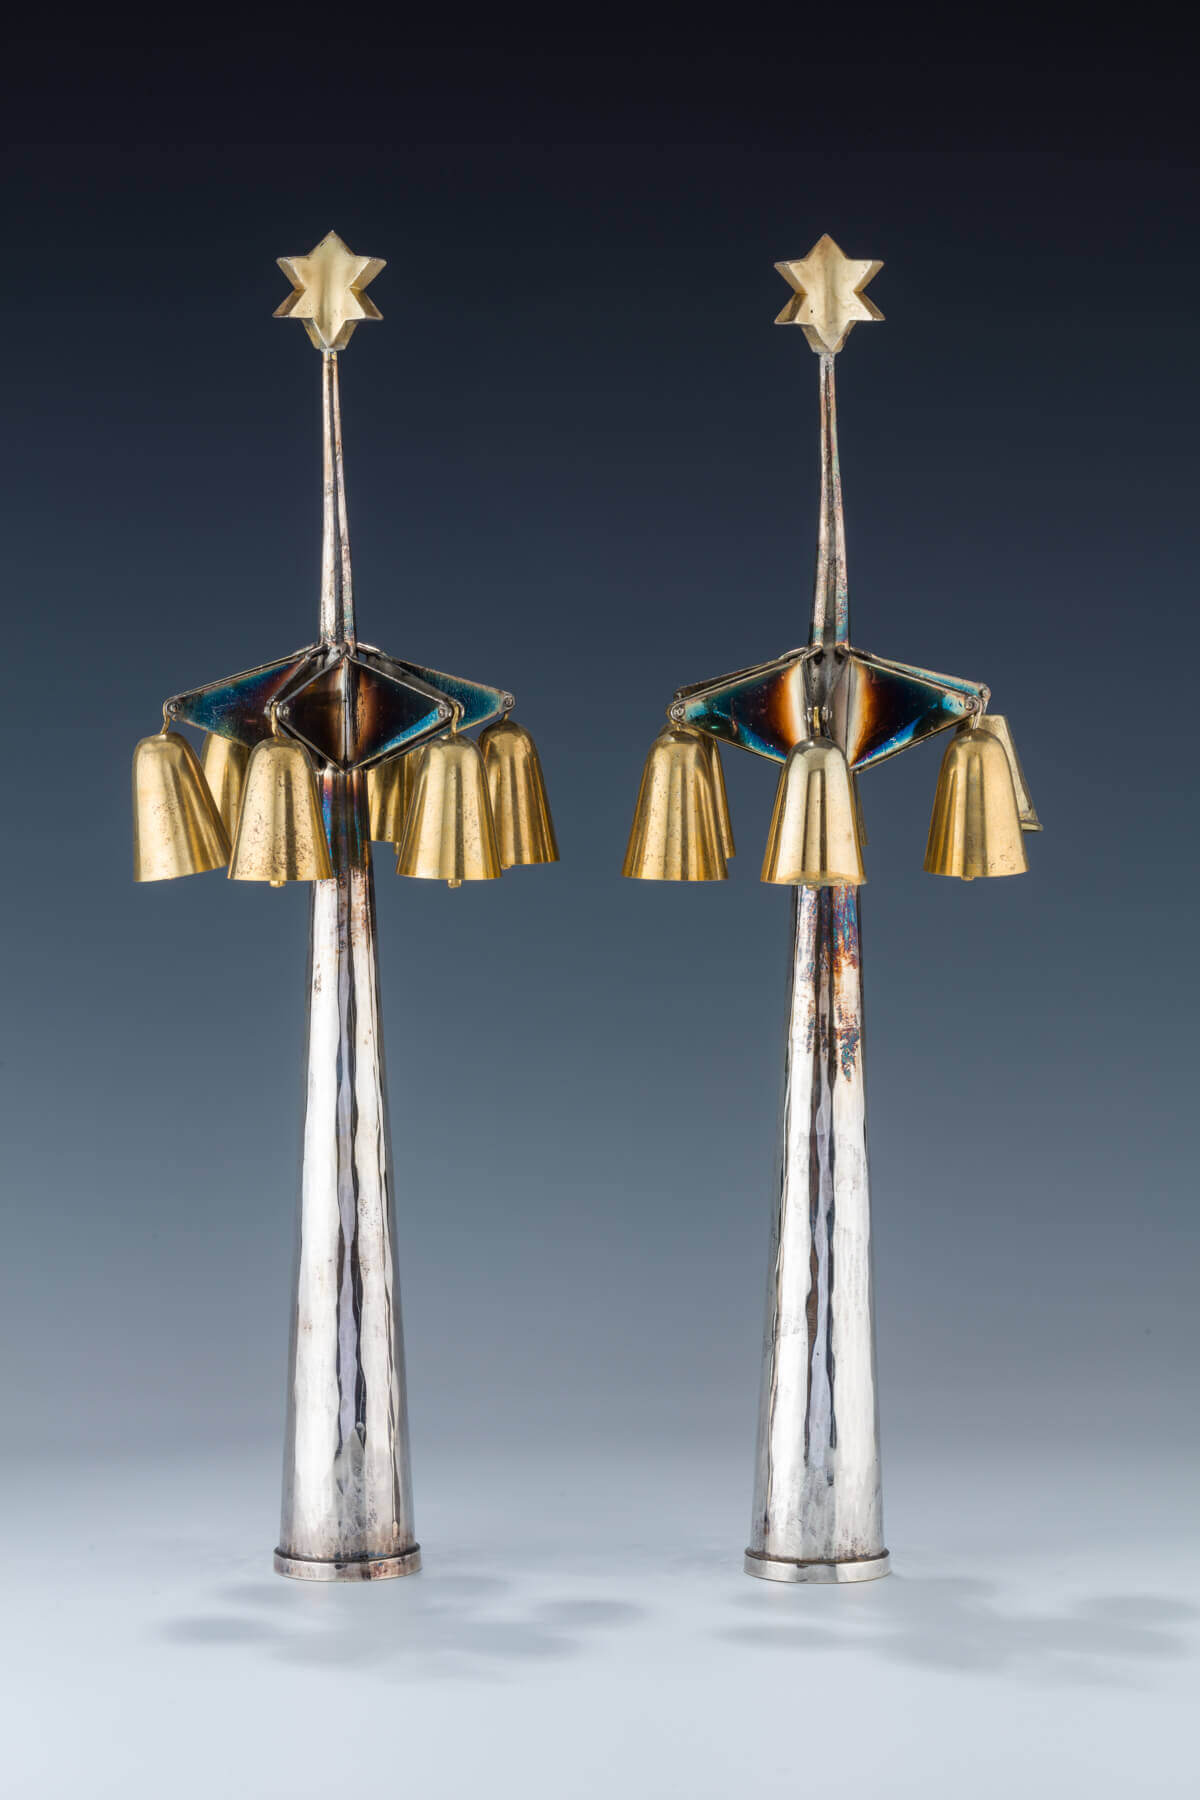 055. A PAIR OF SILVER TORAH FINIALS